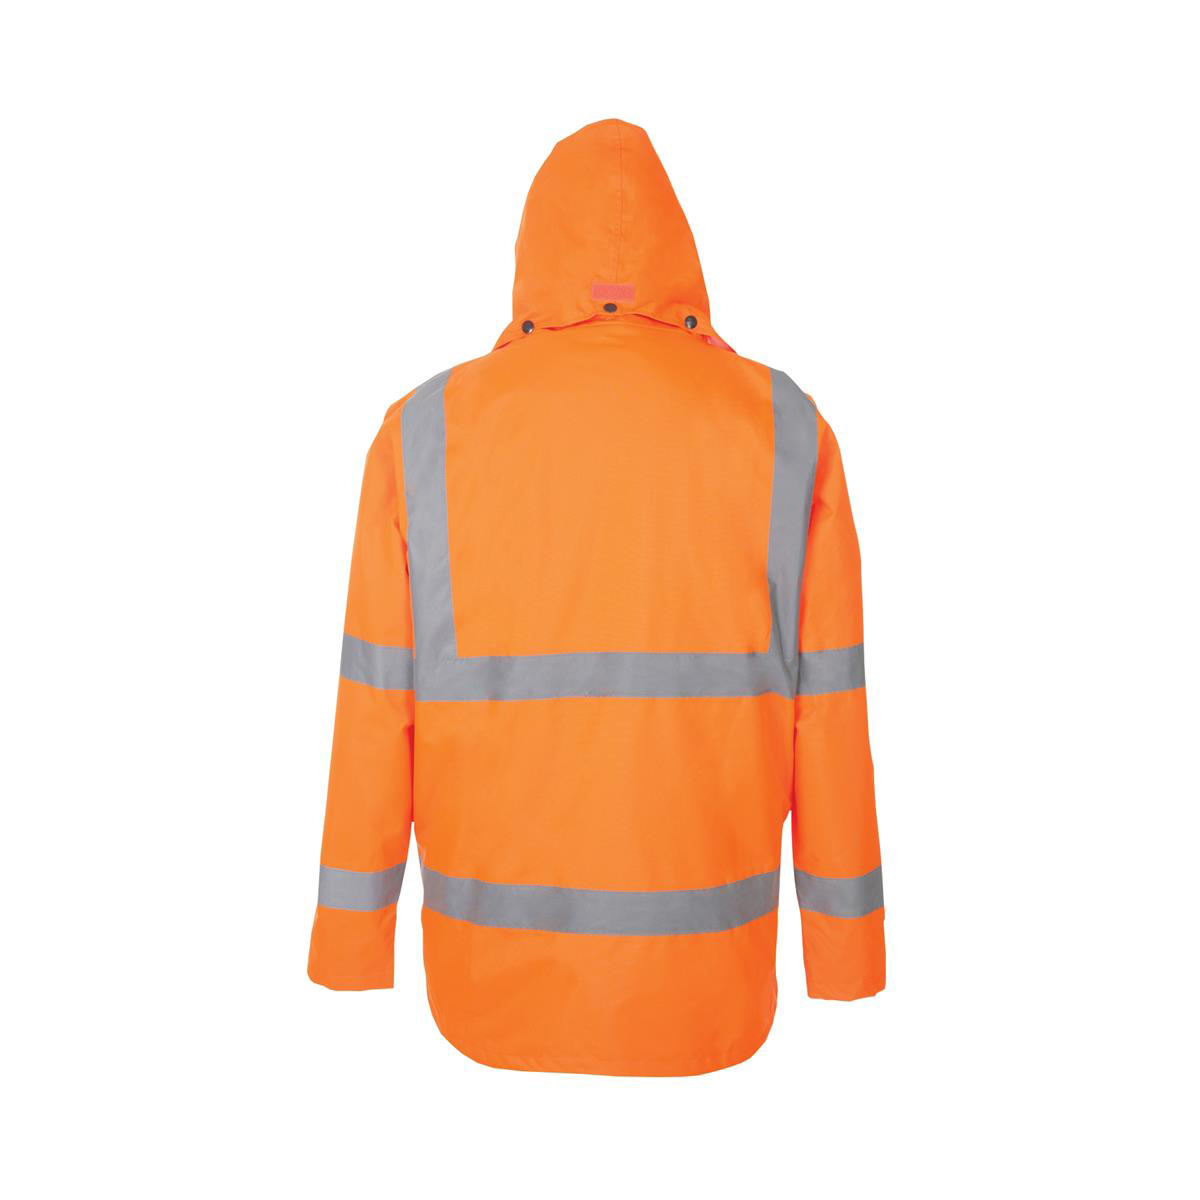 High Visibility Breathable Jacket Multifunctional Large Orange Ref JJORL Approx 2/3 Day Leadtime